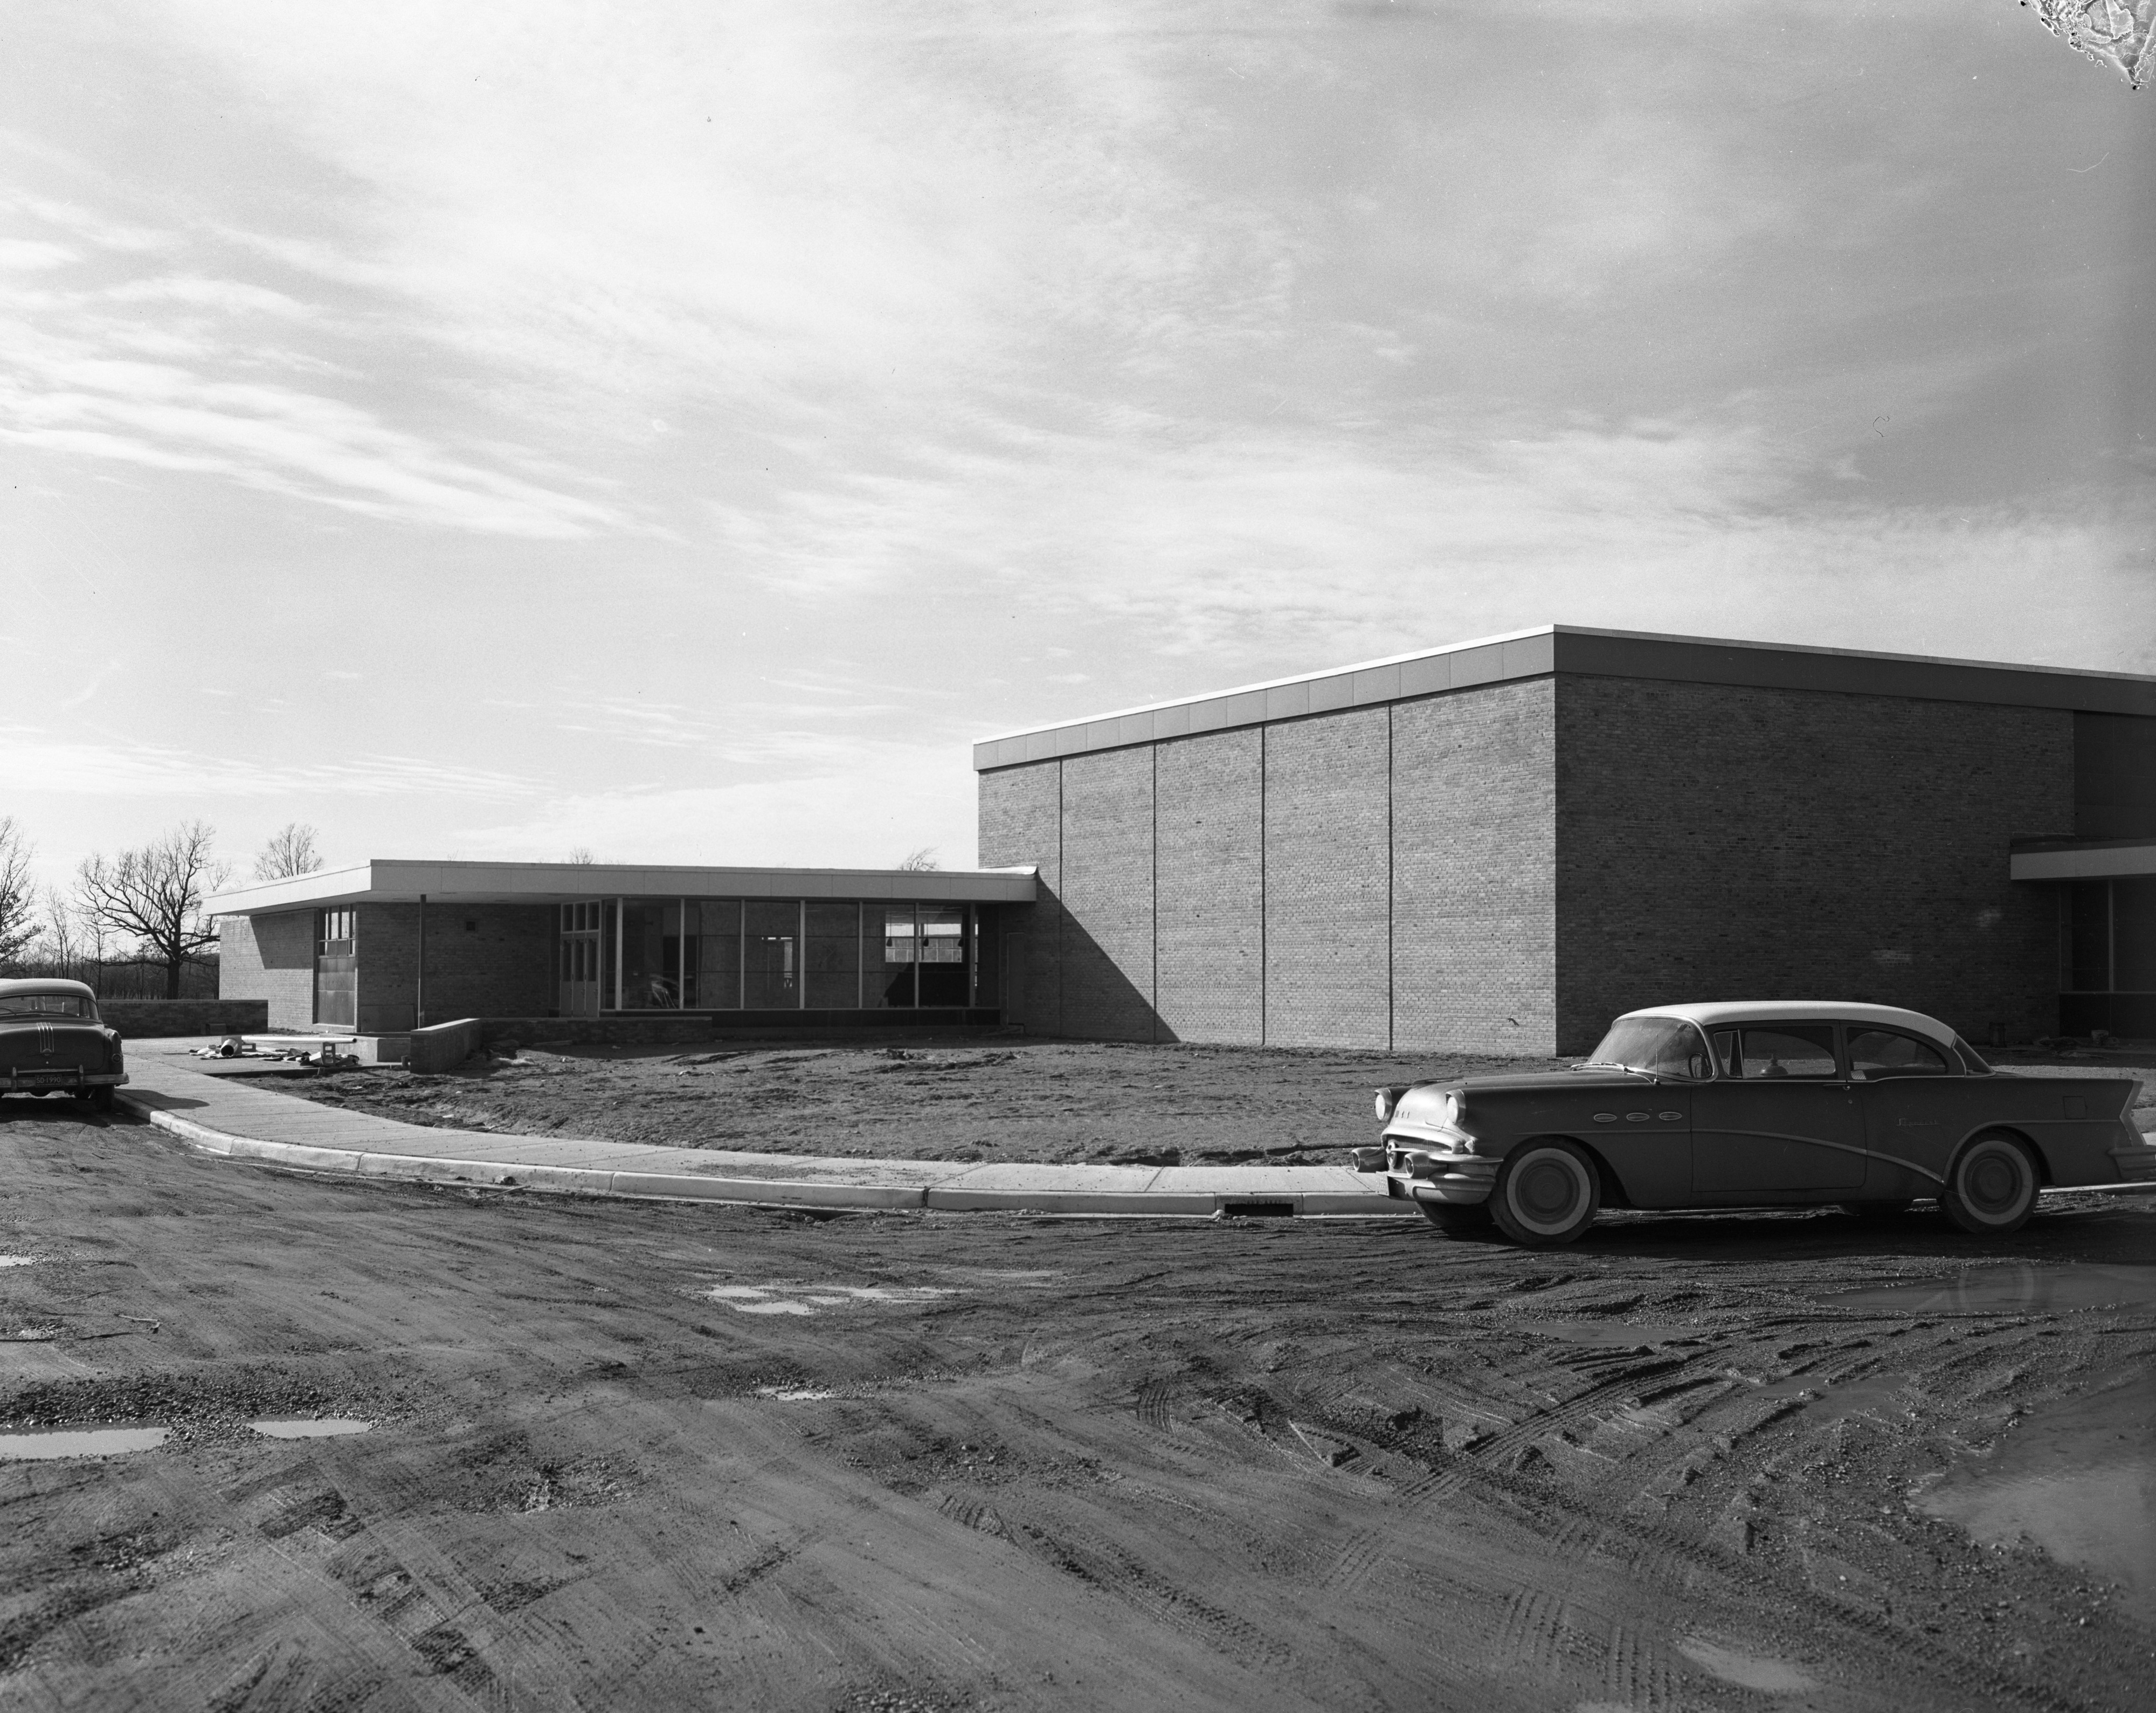 New Wines Elementary School On Newport Road Nearly Completed, March 1957 image